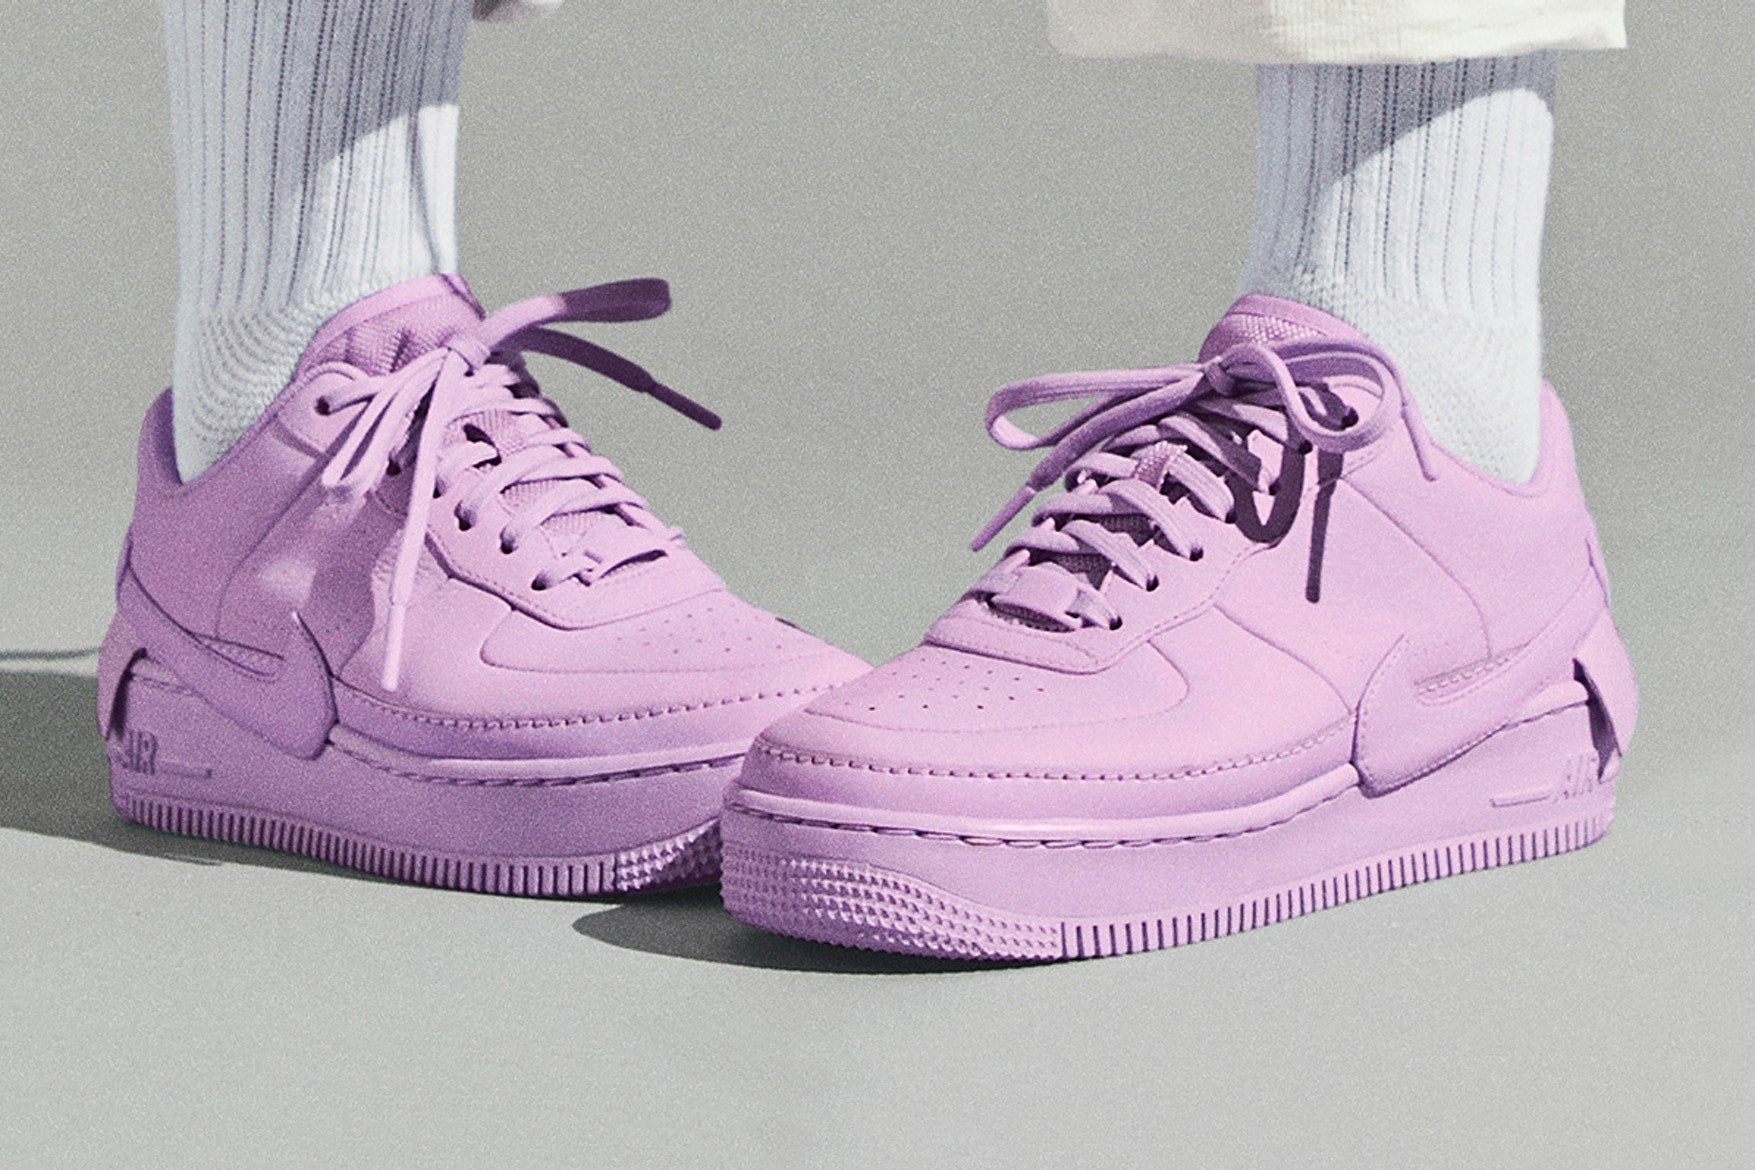 innovative design 45e21 54ffd New Release // Nike Air Force 1 Low 'JESTER XX' Violet Mist ...